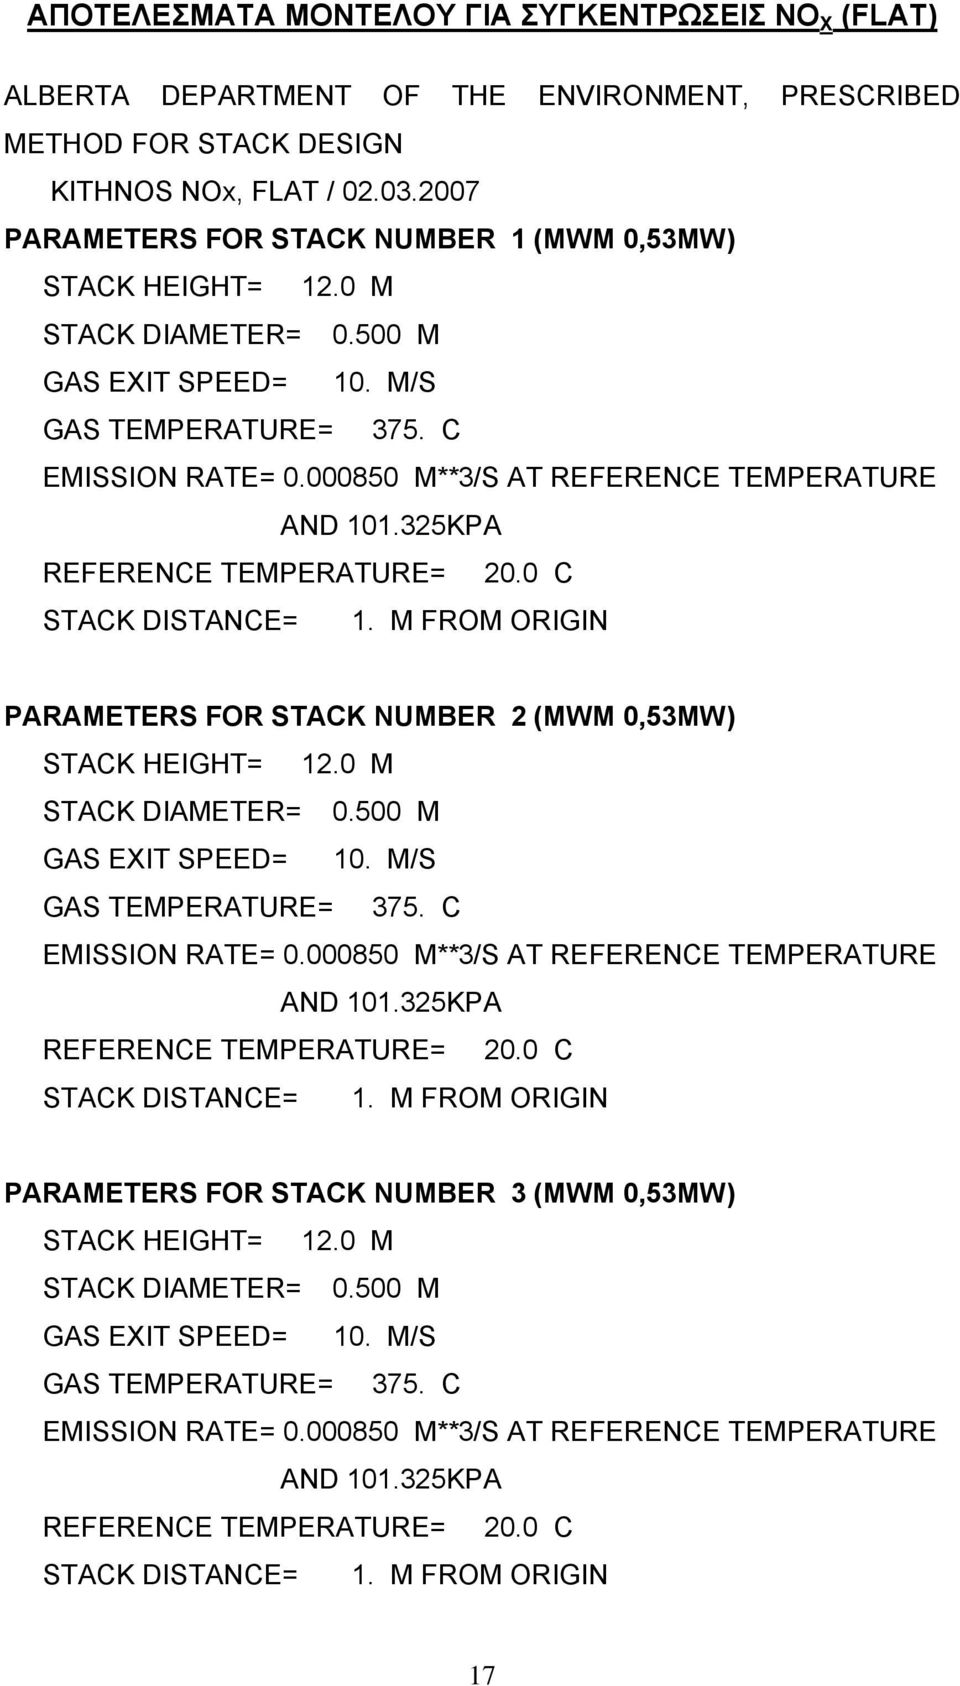 000850 M**3/S AT REFERENCE TEMPERATURE AND 101.325KPA REFERENCE TEMPERATURE= 20.0 C STACK DISTANCE= 1. M FROM ORIGIN PARAMETERS FOR STACK NUMBER 2 (ΜWM 0,53MW) STACK HEIGHT= 12.0 M STACK DIAMETER= 0.